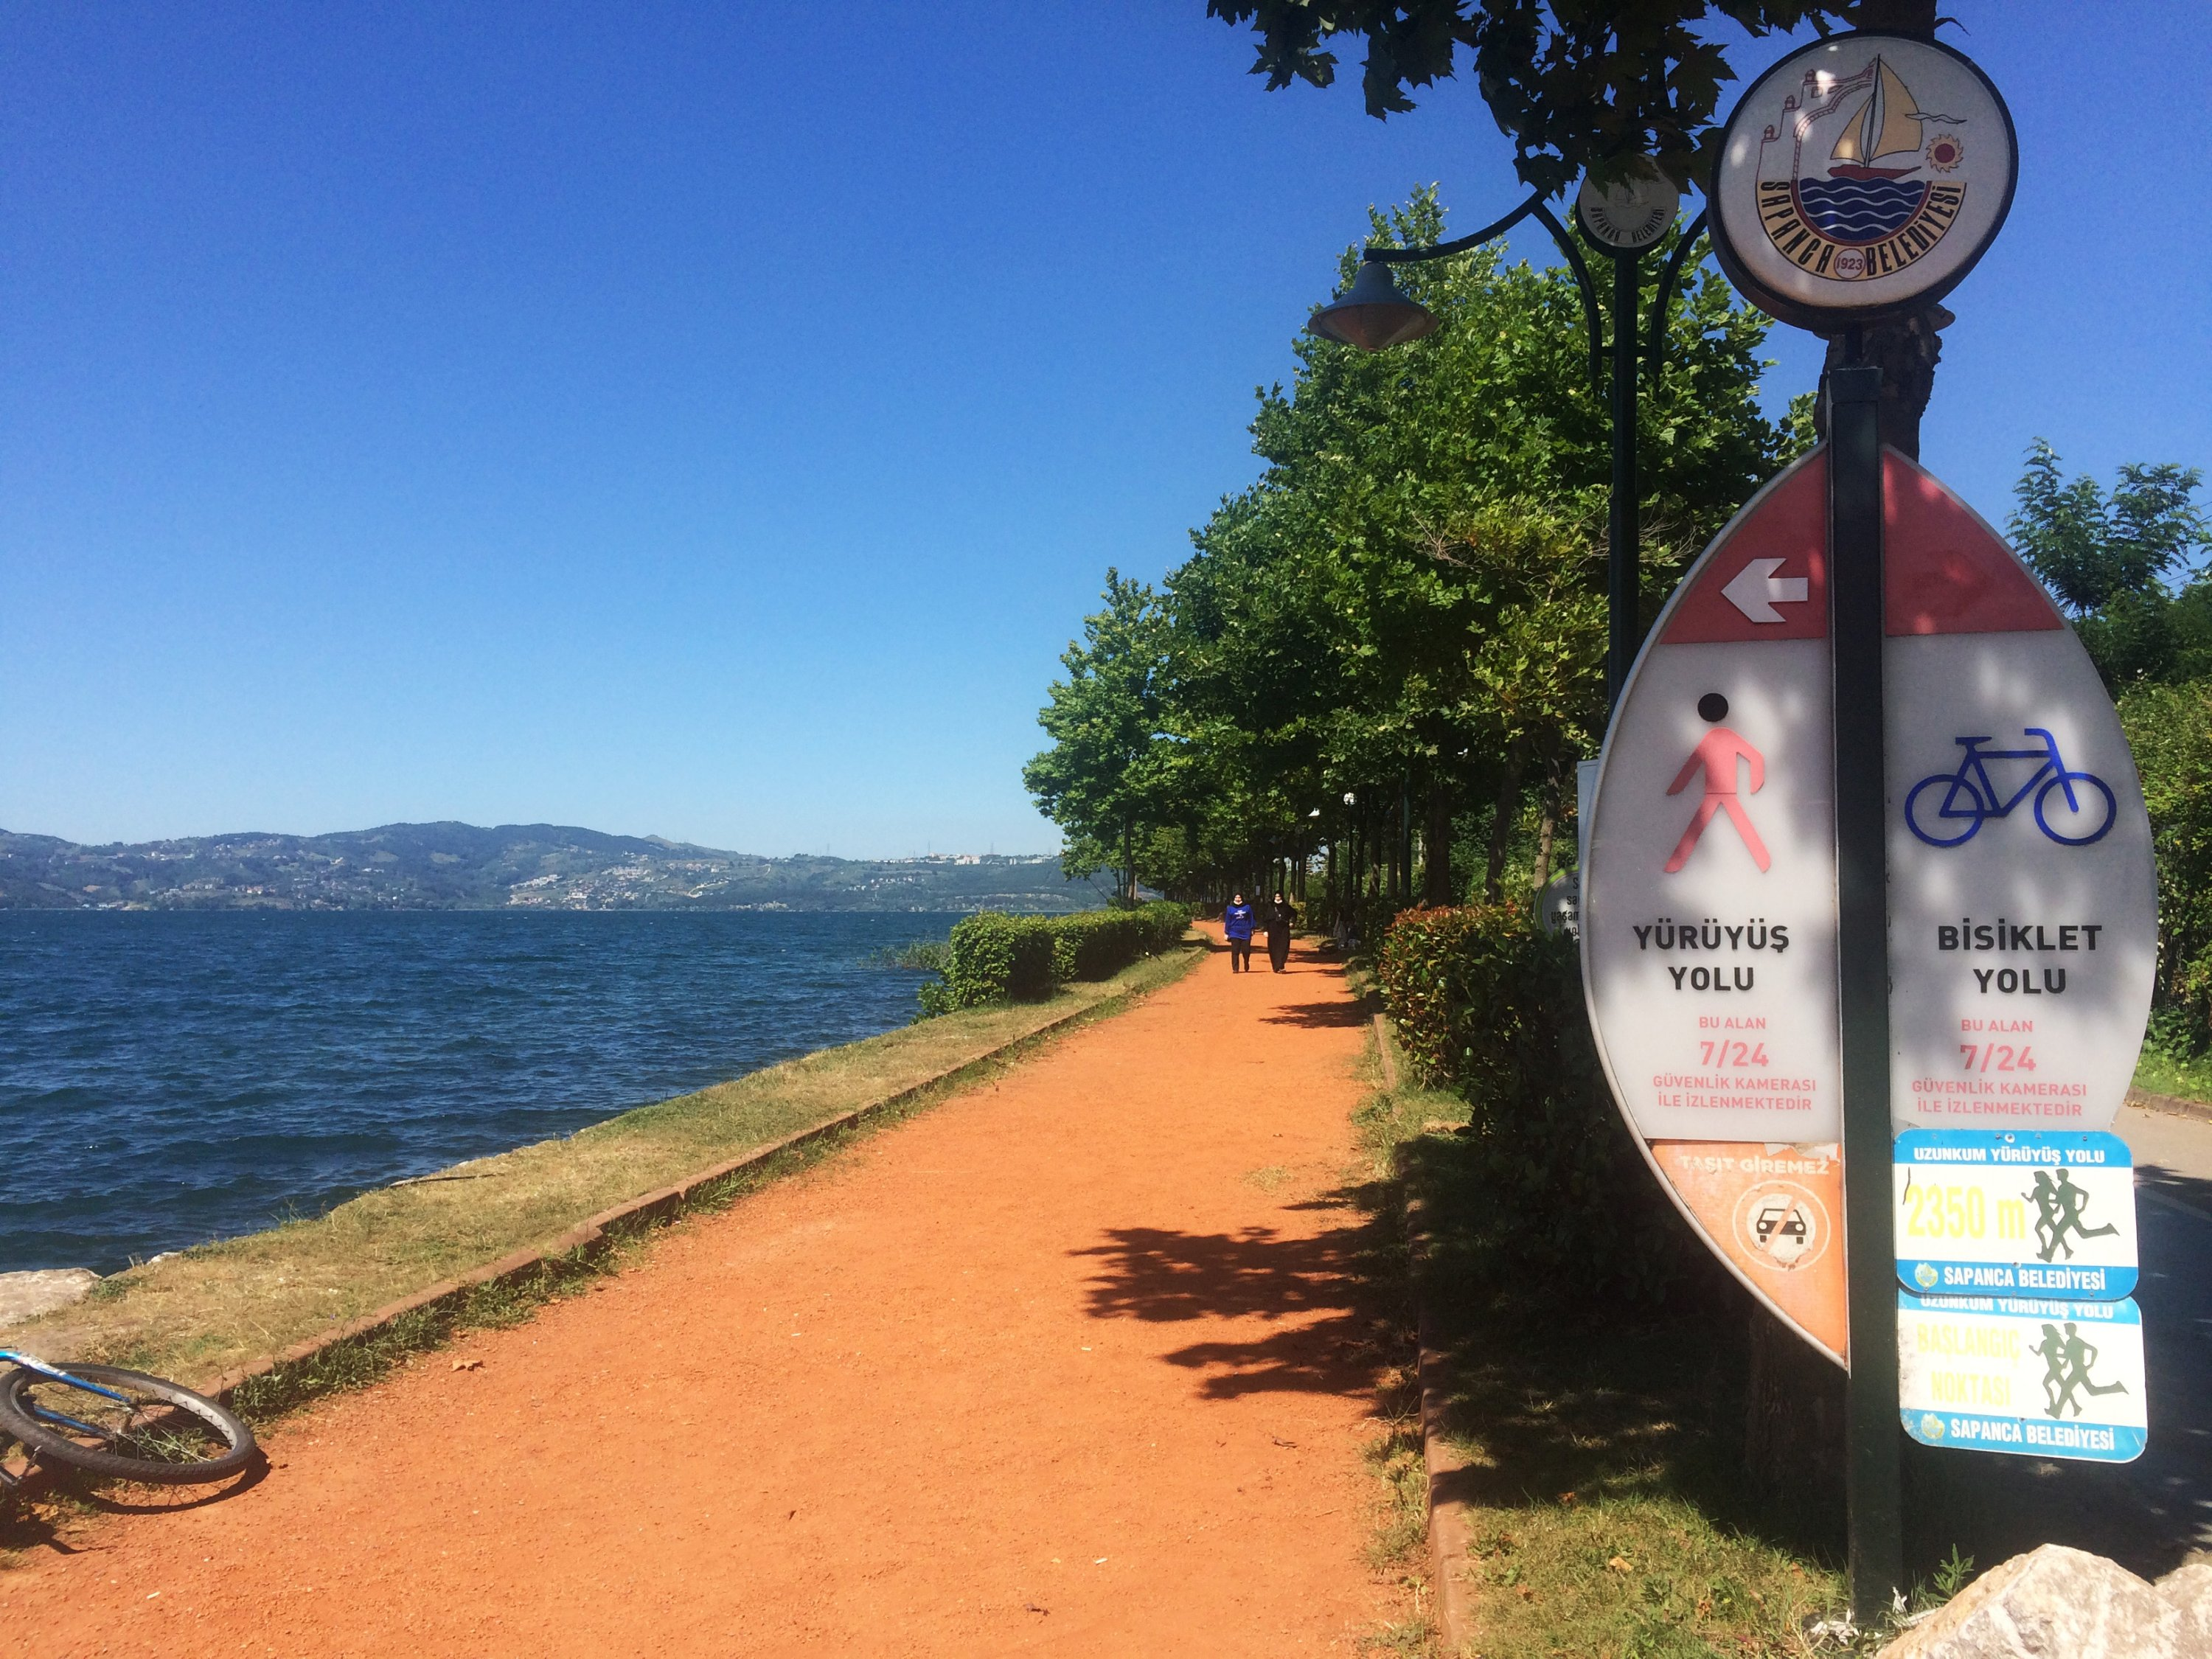 The walking and biking paths starting at Harmanlık provide a breezy spot to exercise along the water, July 11, 2020. (Gabriela Akpaça / Daily Sabah)